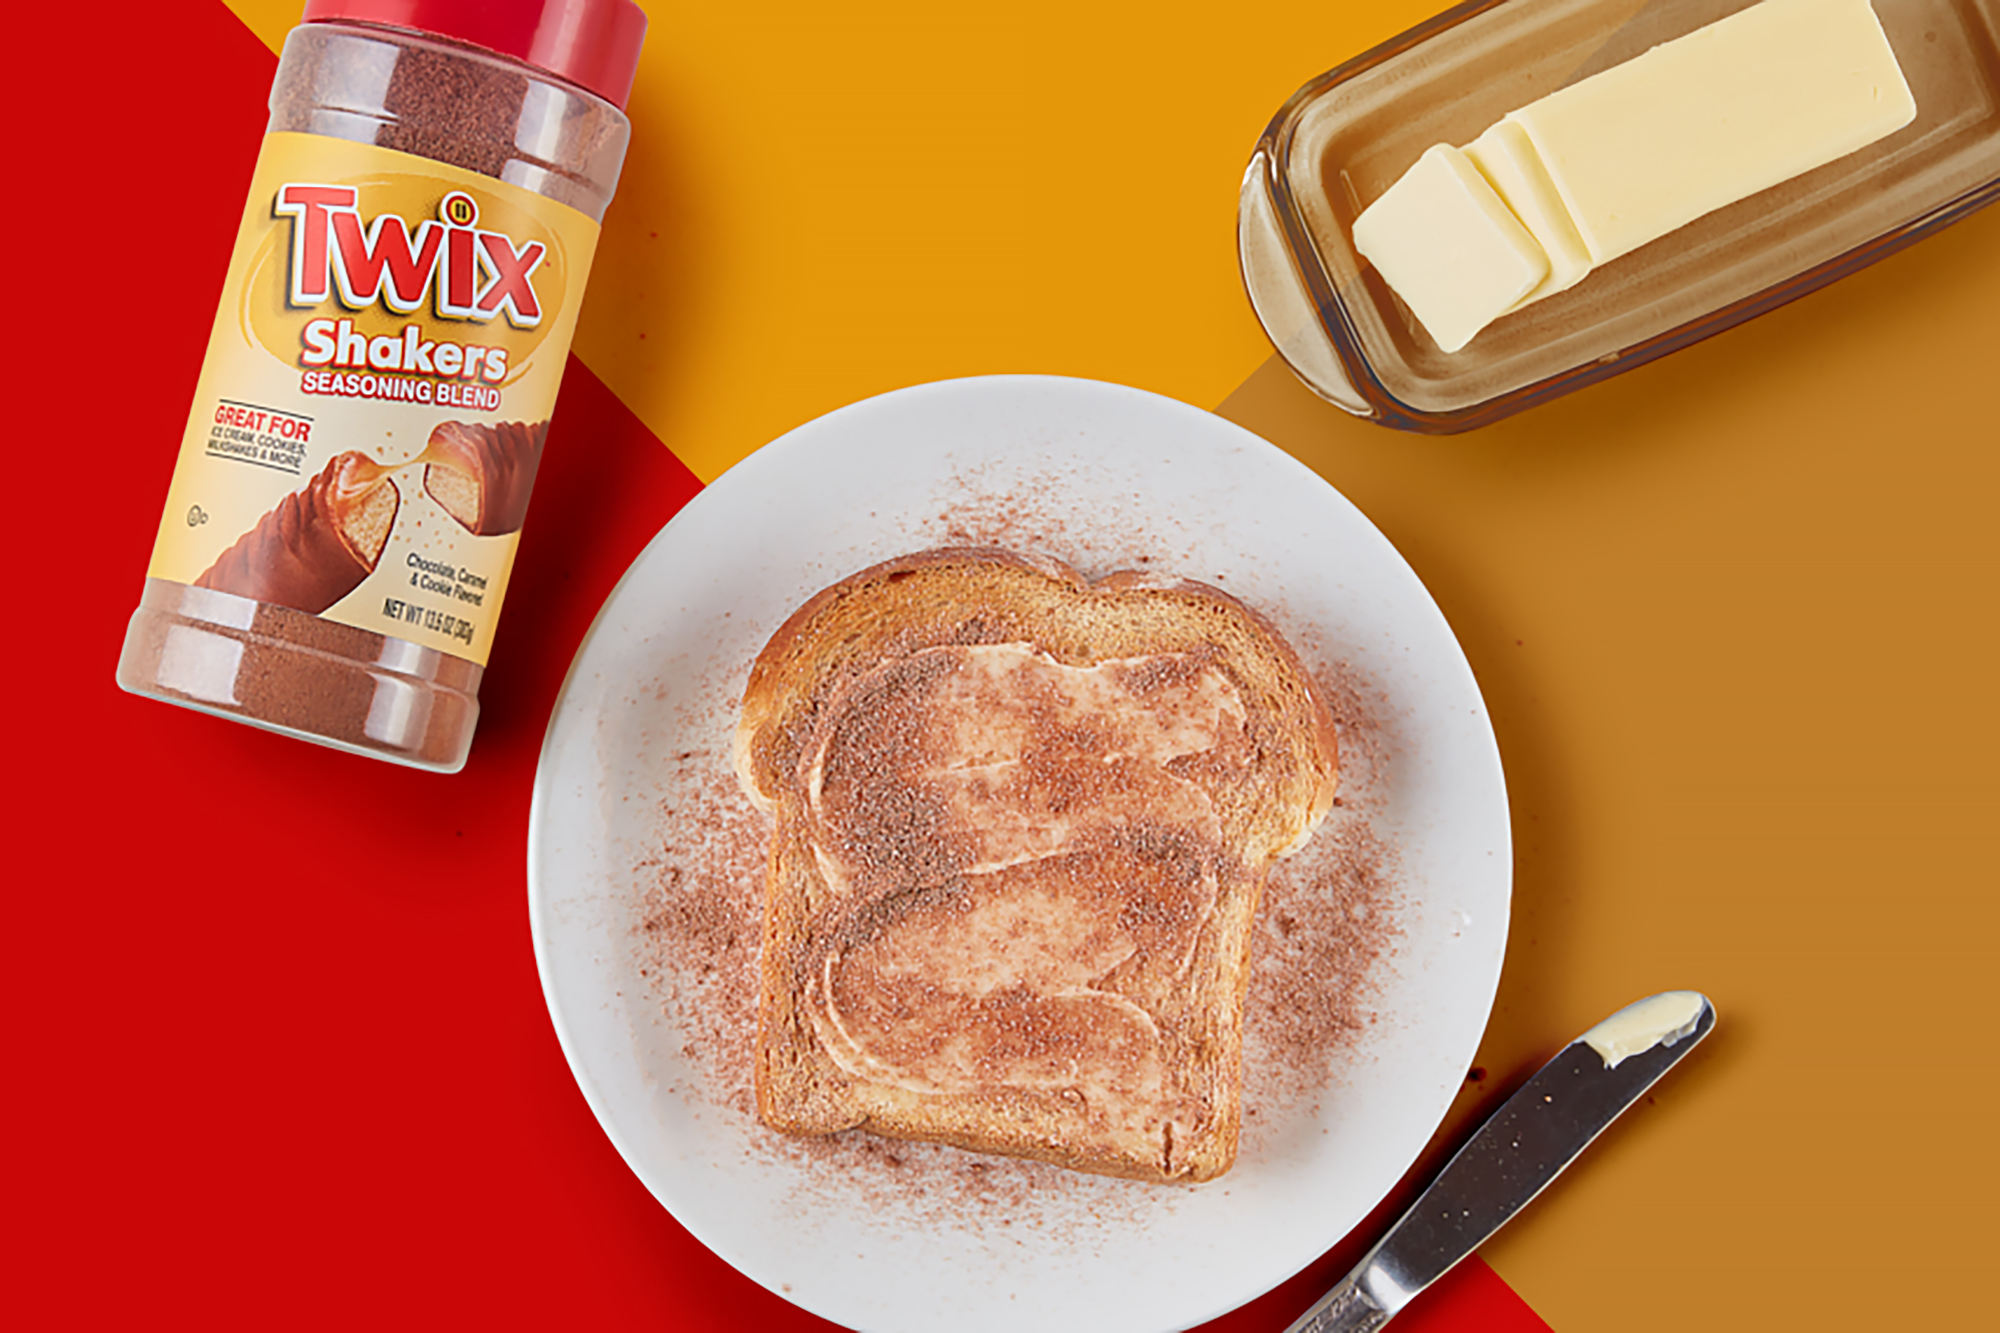 Twix Seasoning Blend with buttered toast and a butter stick on a serving plate